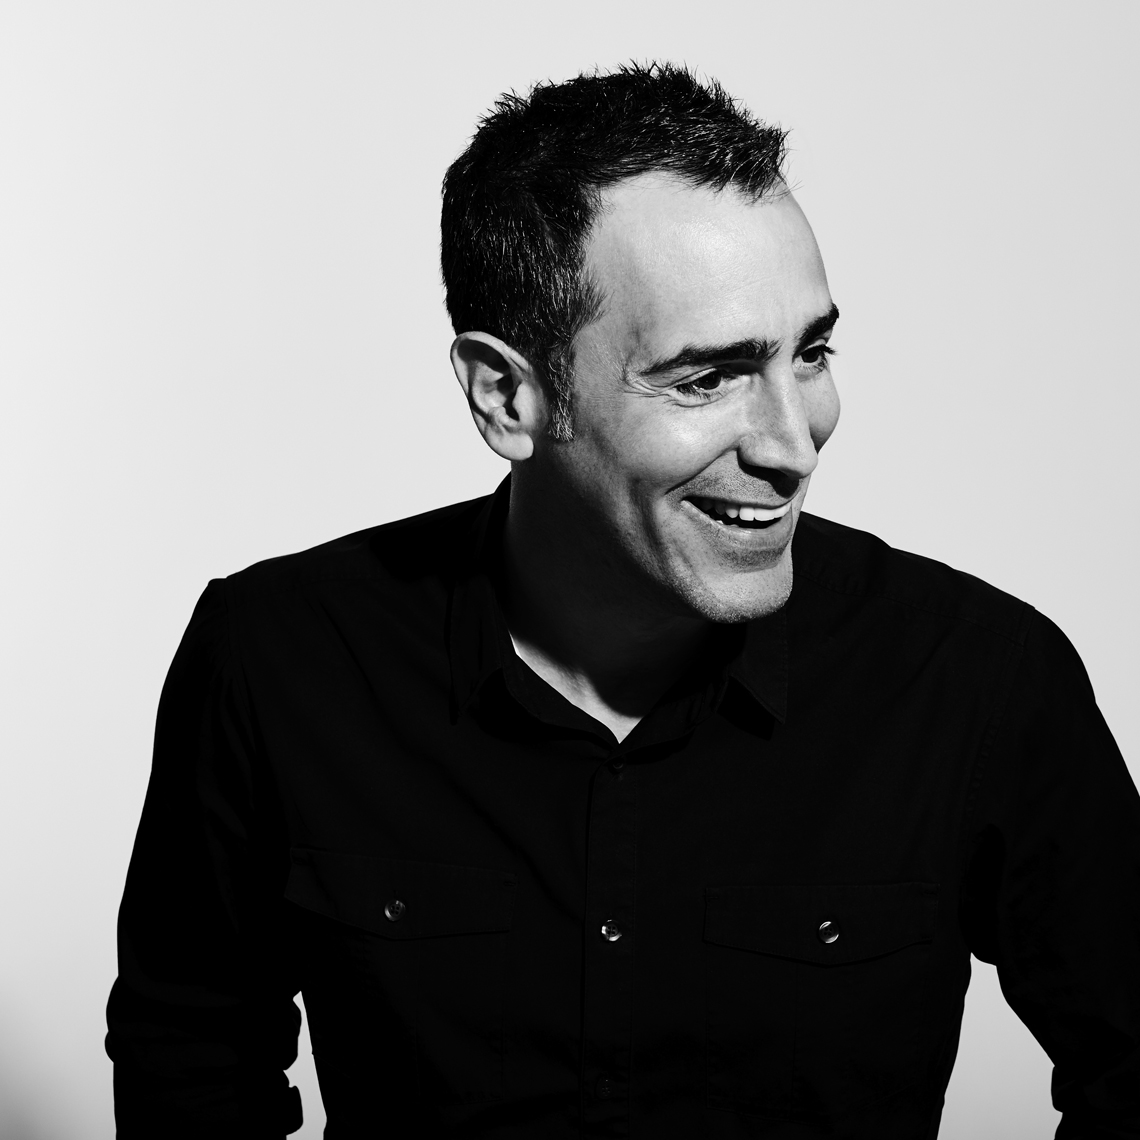 black and white portrait of Joe laughing off camera